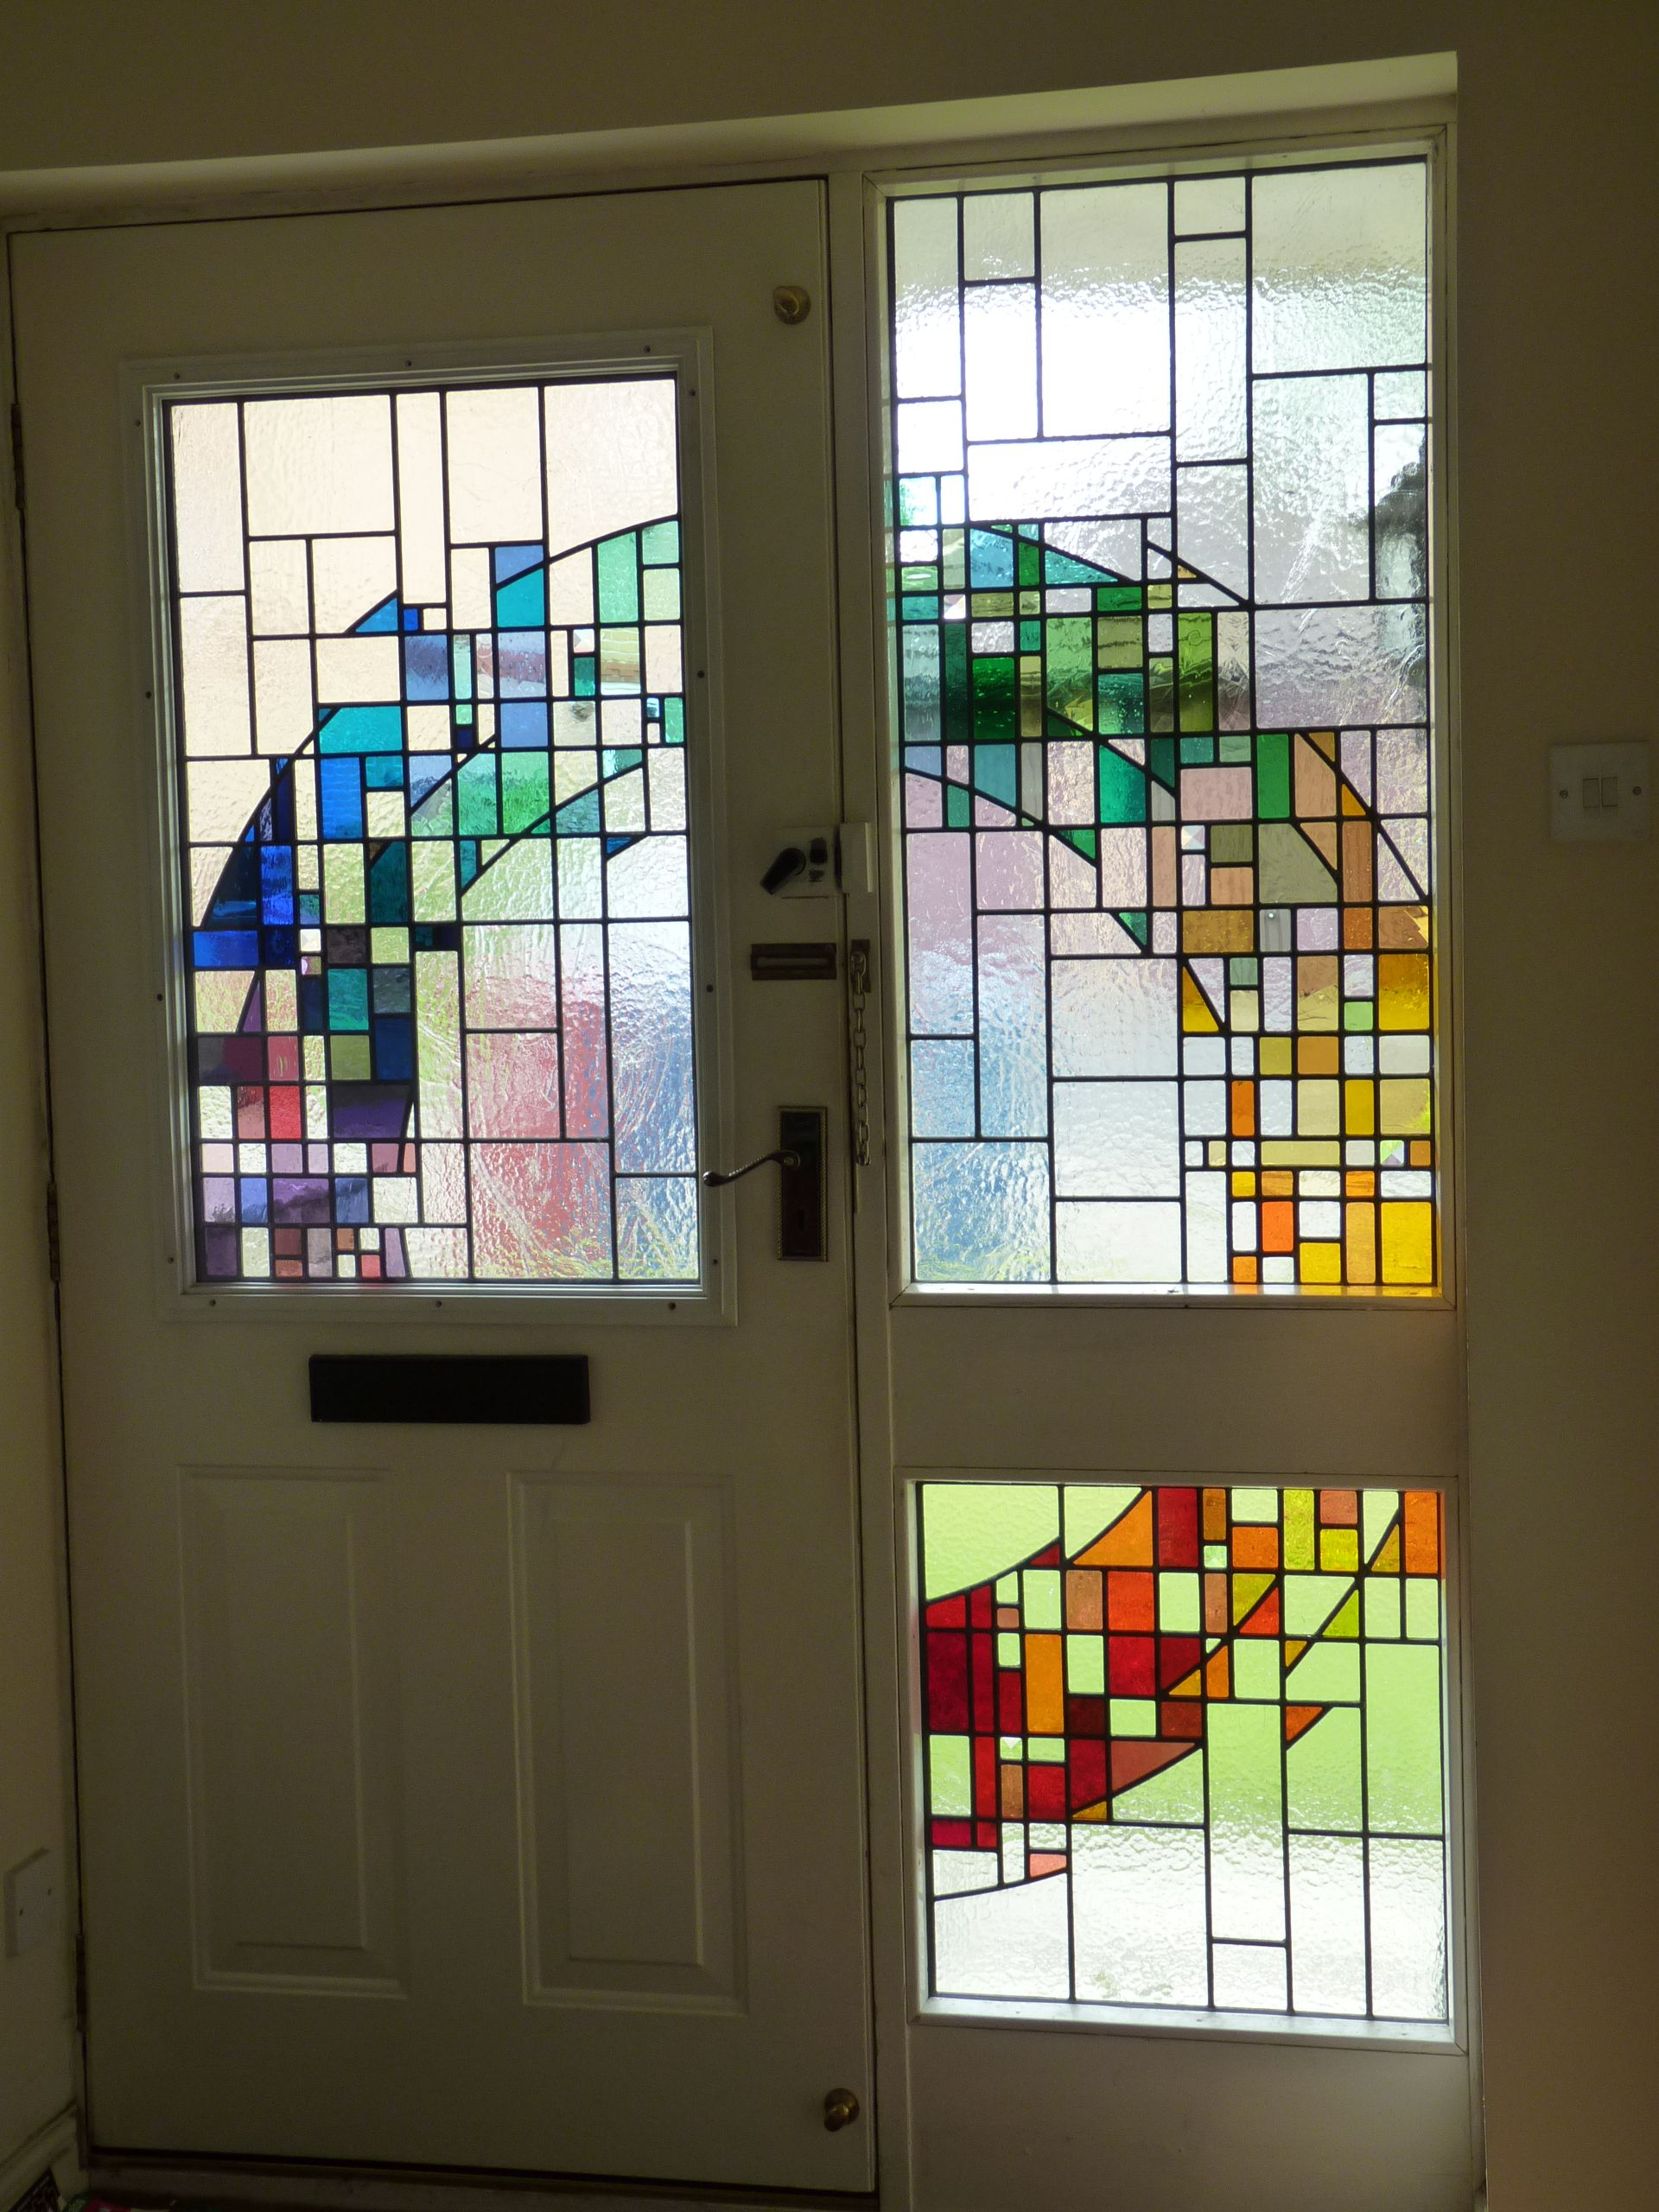 Lightworks stained glass lightworks stained glass pinterest stained glass art eventelaan Image collections